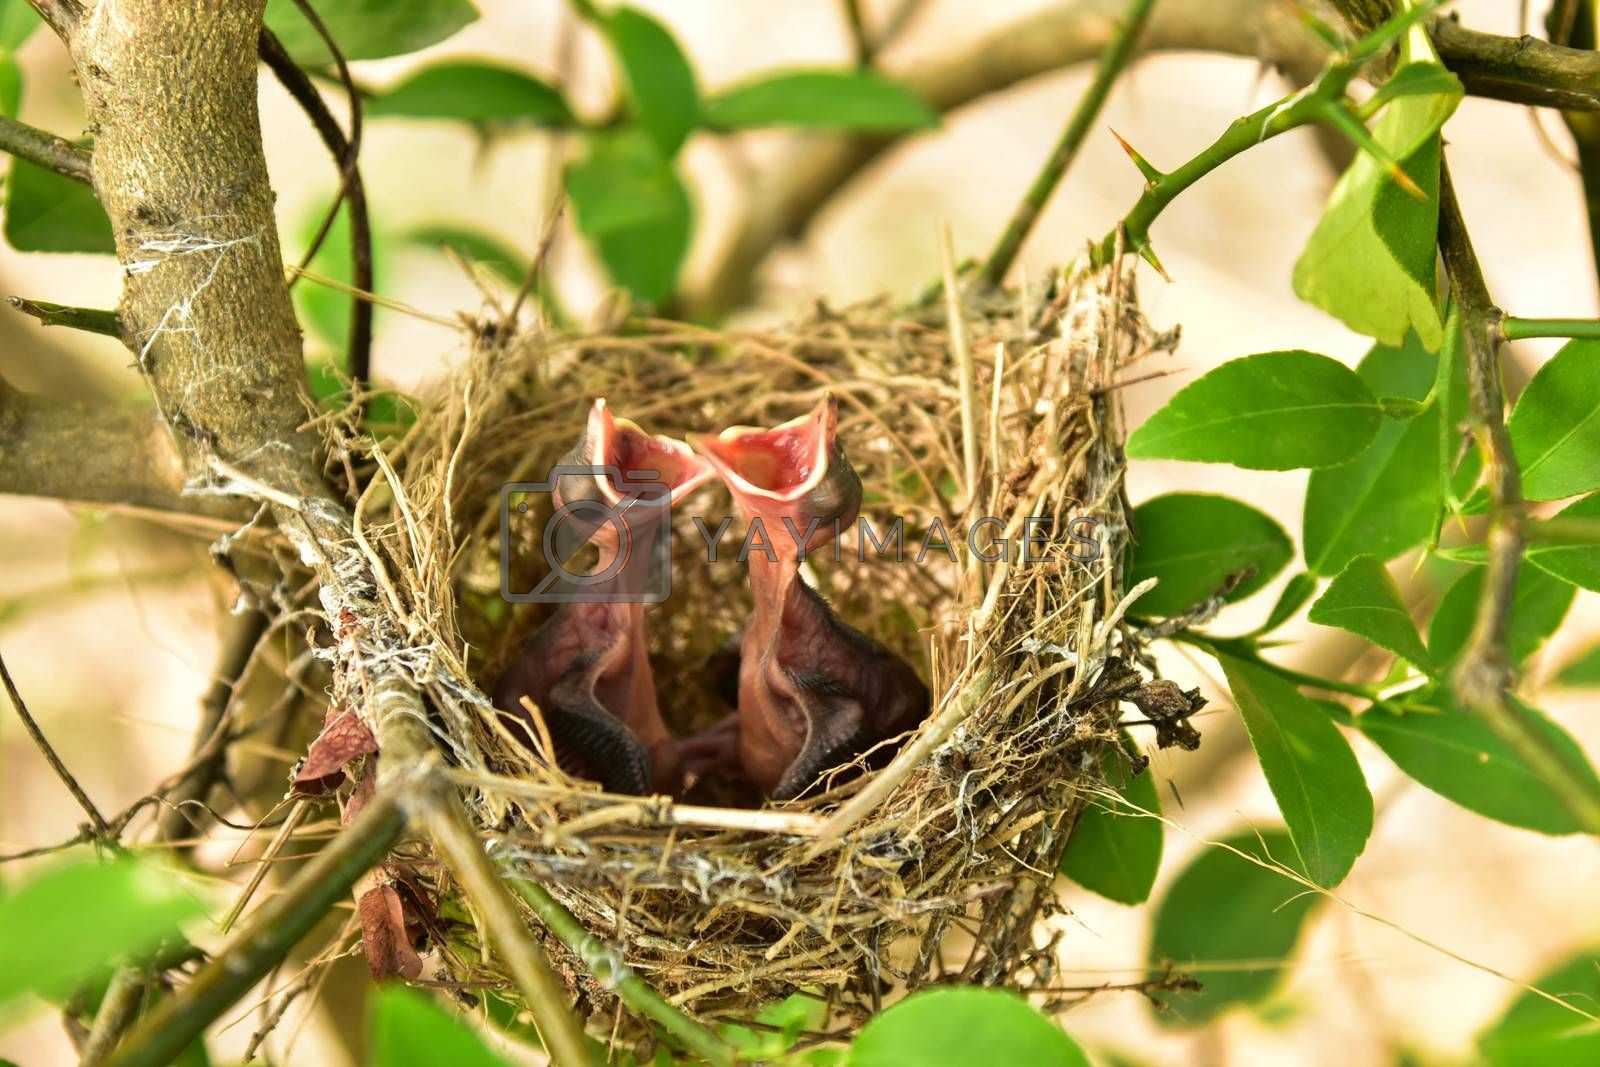 Nest of birds with small babies.